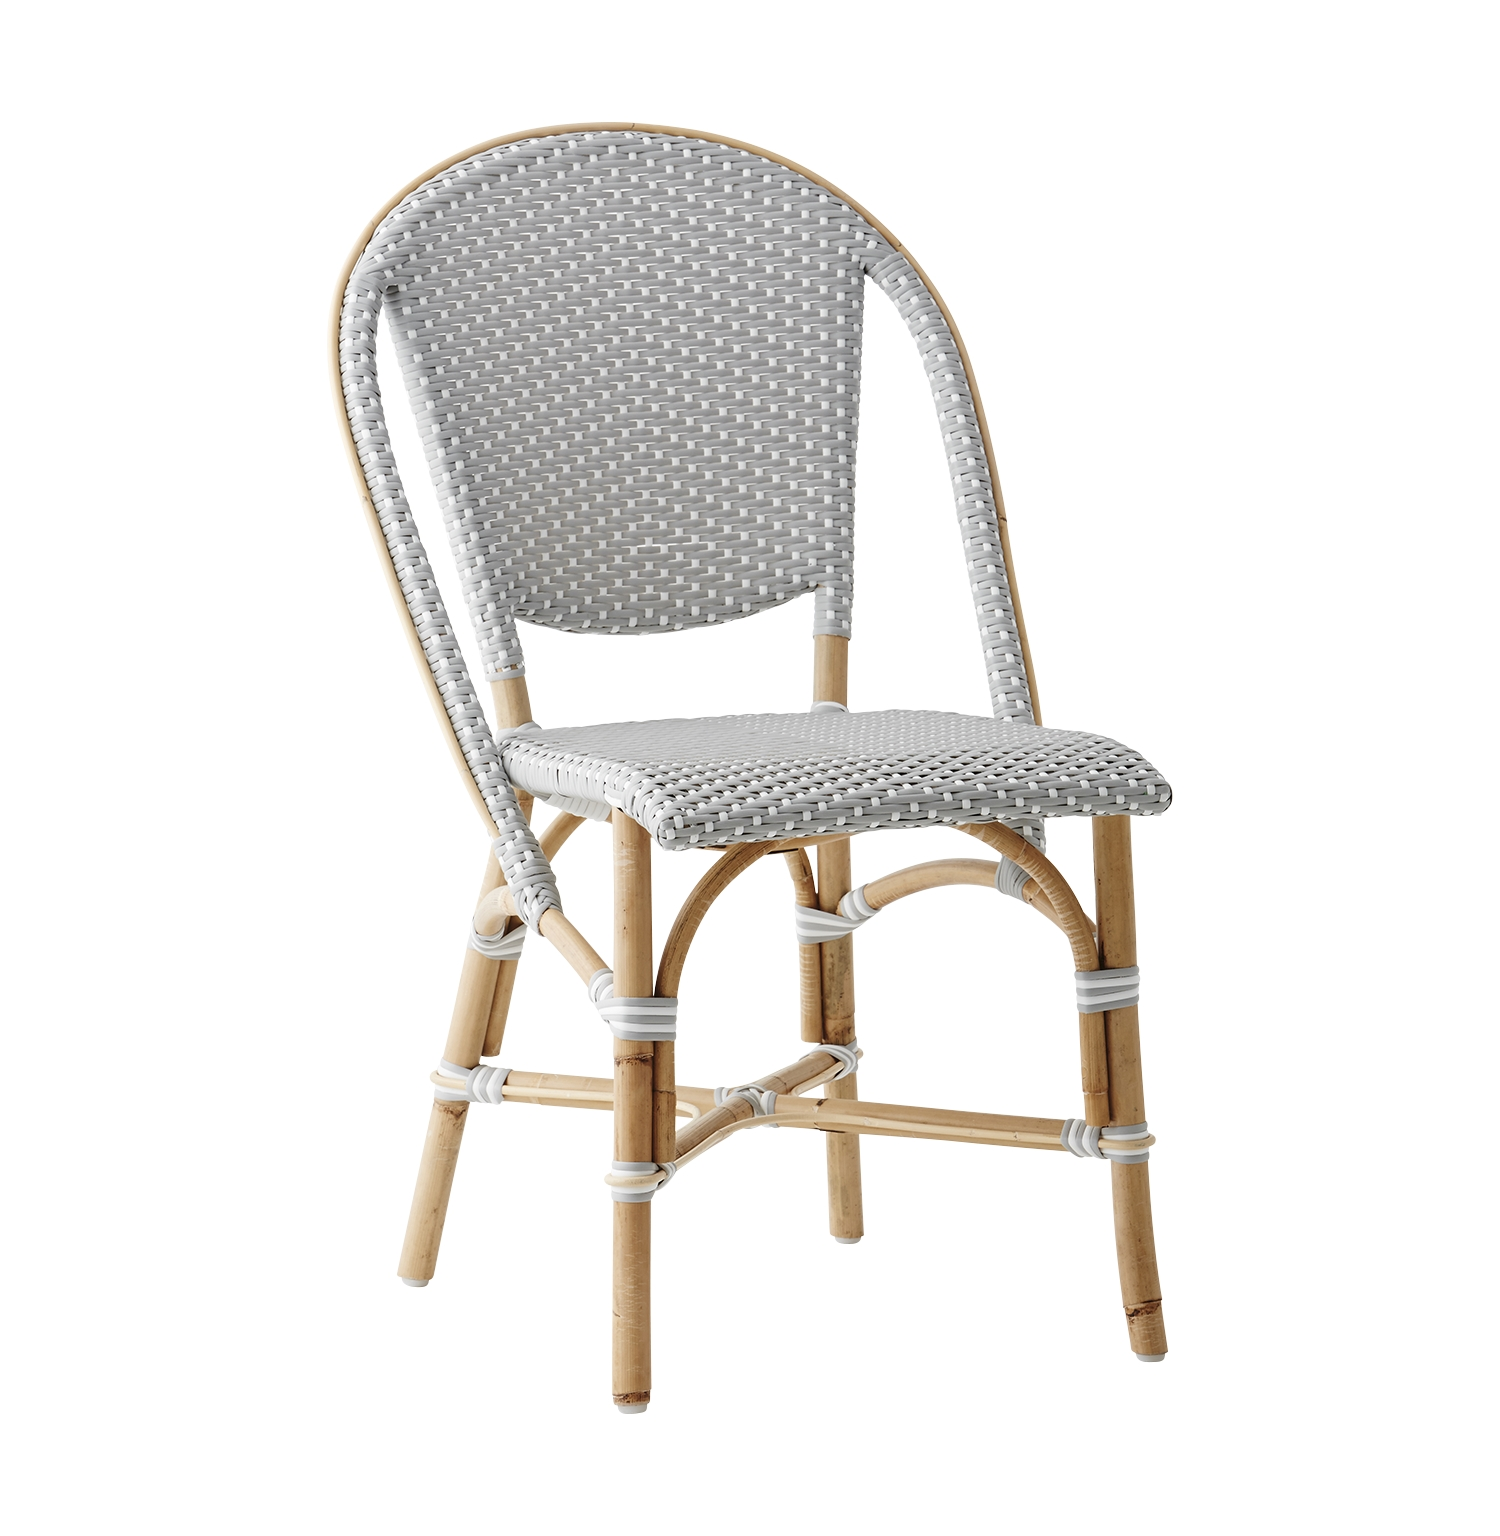 Sofie Side Chair grey/ white dots, Sika-design